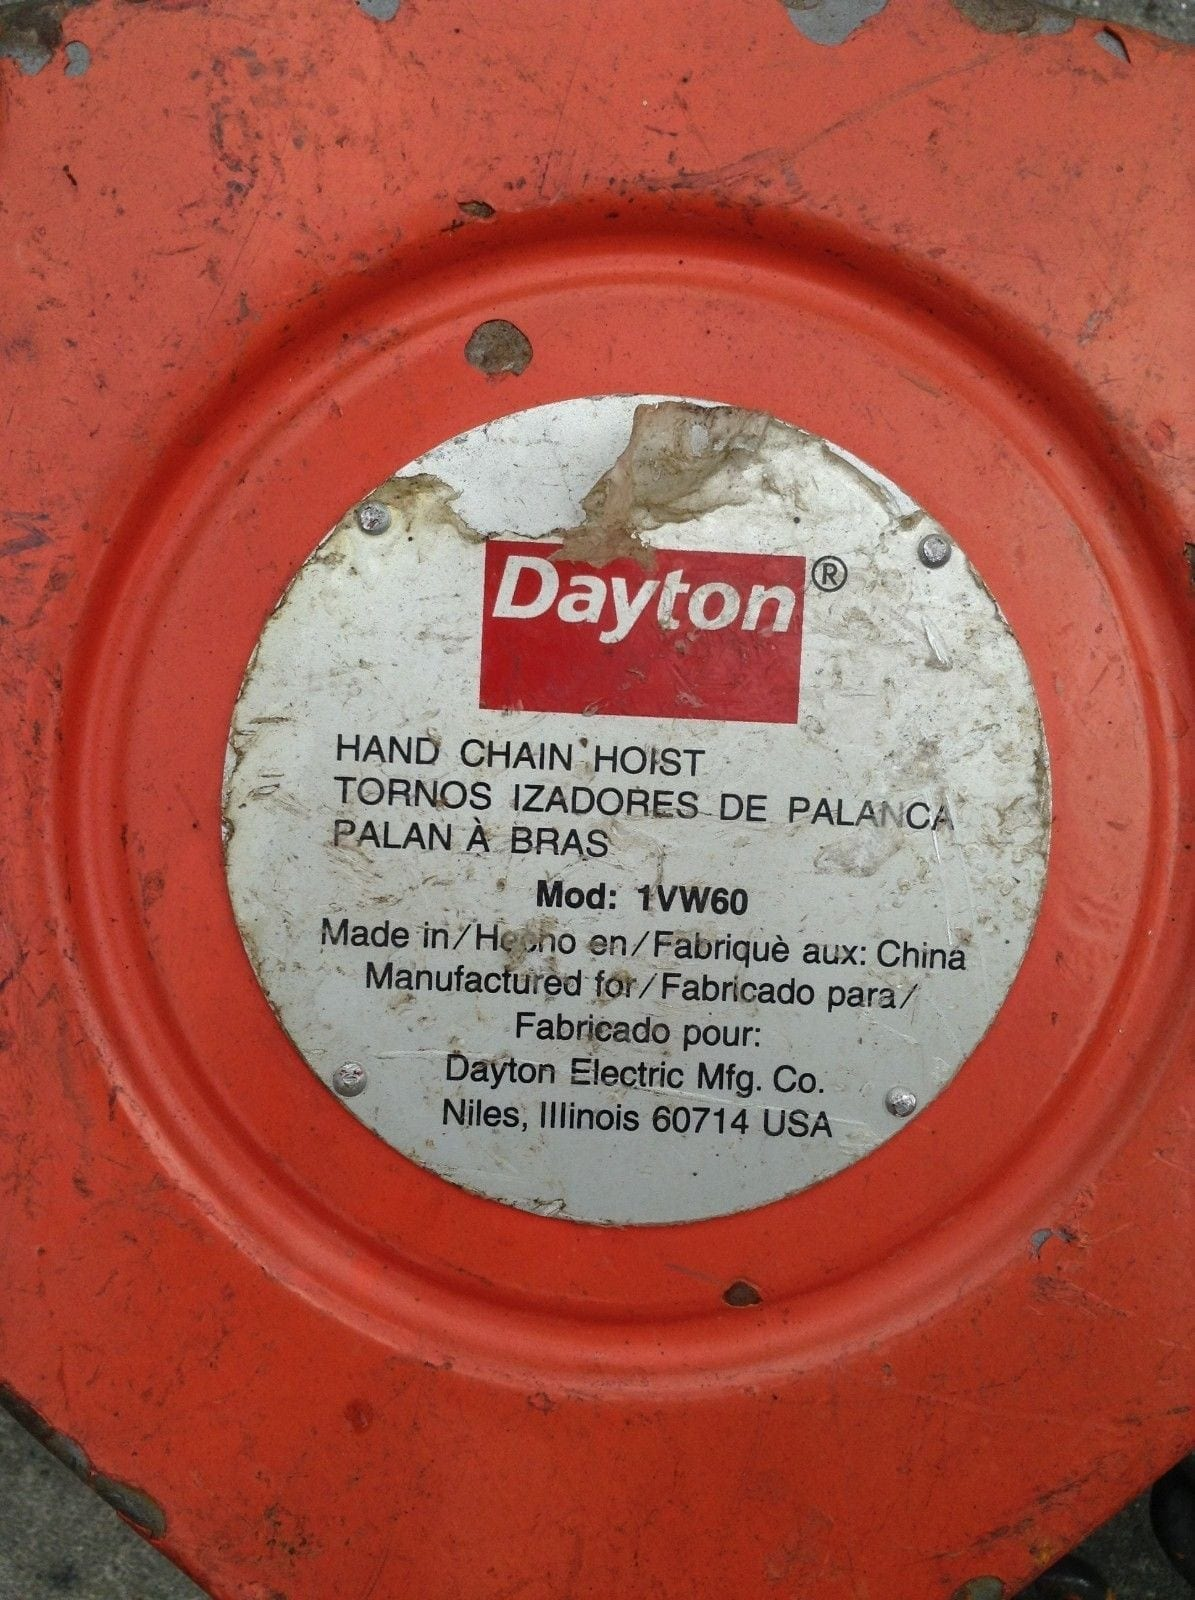 Dayton 1vw60 20ft 2 Ton Manual Hand Chain Hoist Moses B Glick Electric Wiring Diagram